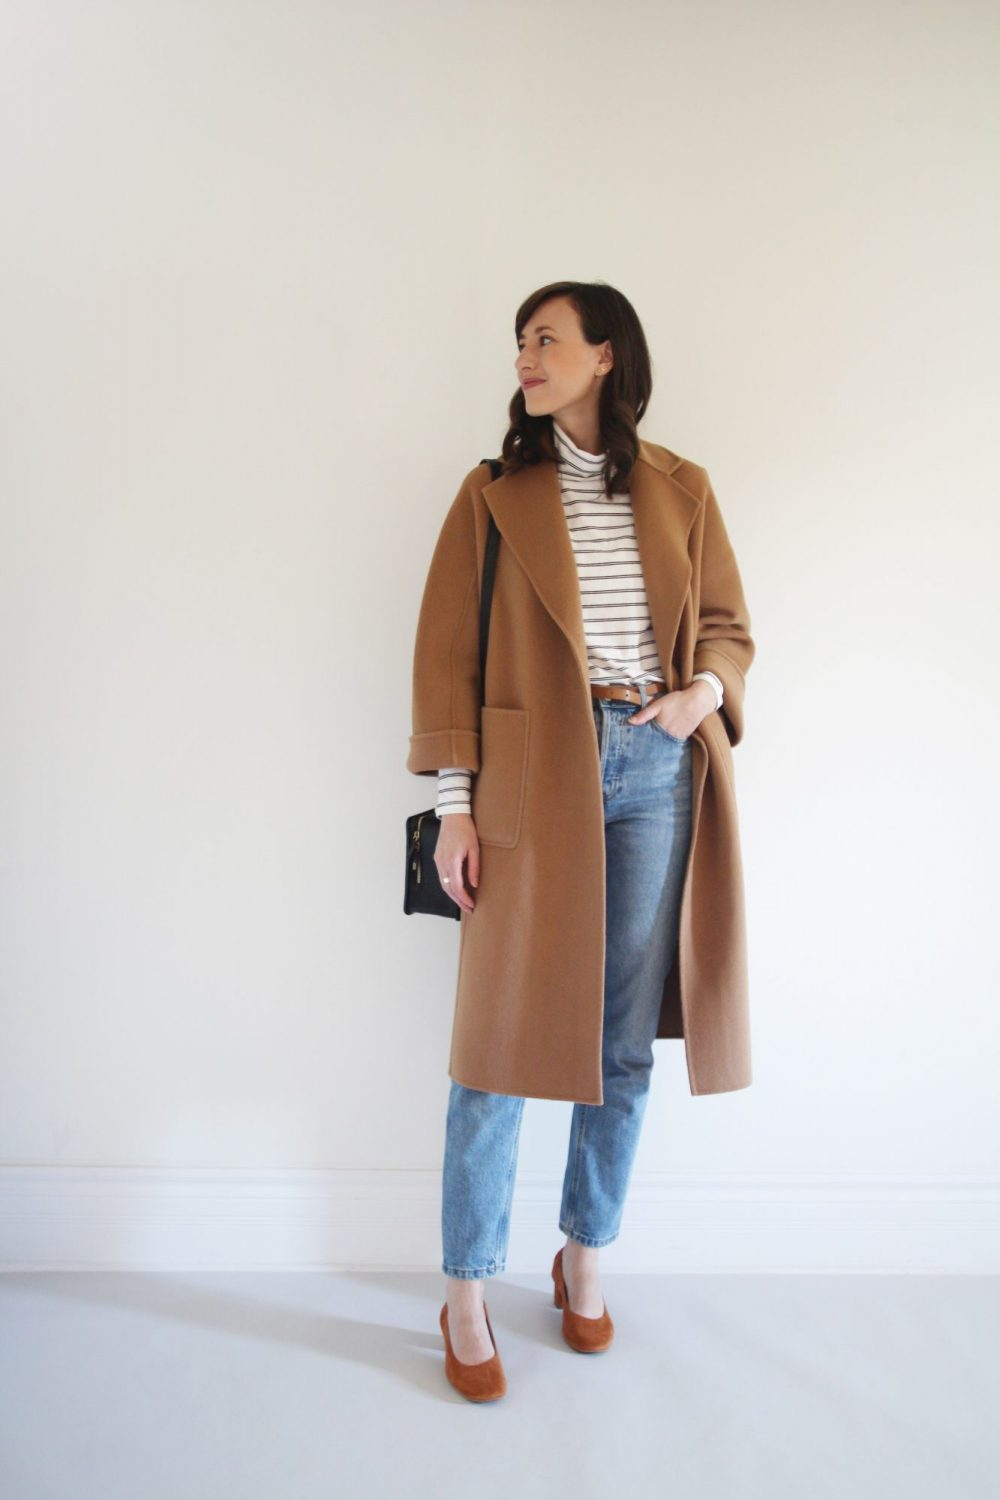 I hope you're having a good week! Today I'm taking a look at an easy-going fall staple that I was really excited to test out and style into not 1, not 2, not 3, not even 4 but 5 different looks for the season!